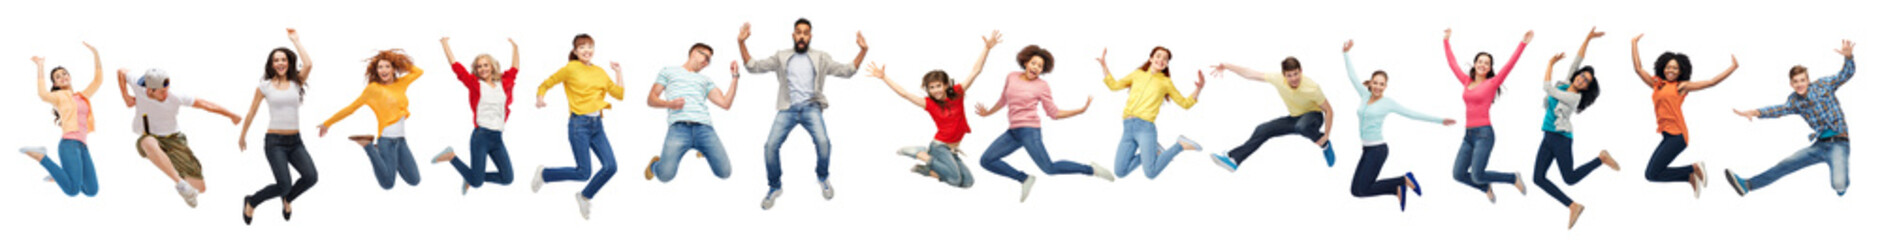 happiness, freedom, motion and diversity concept - happy people jumping in air over white background Wall mural